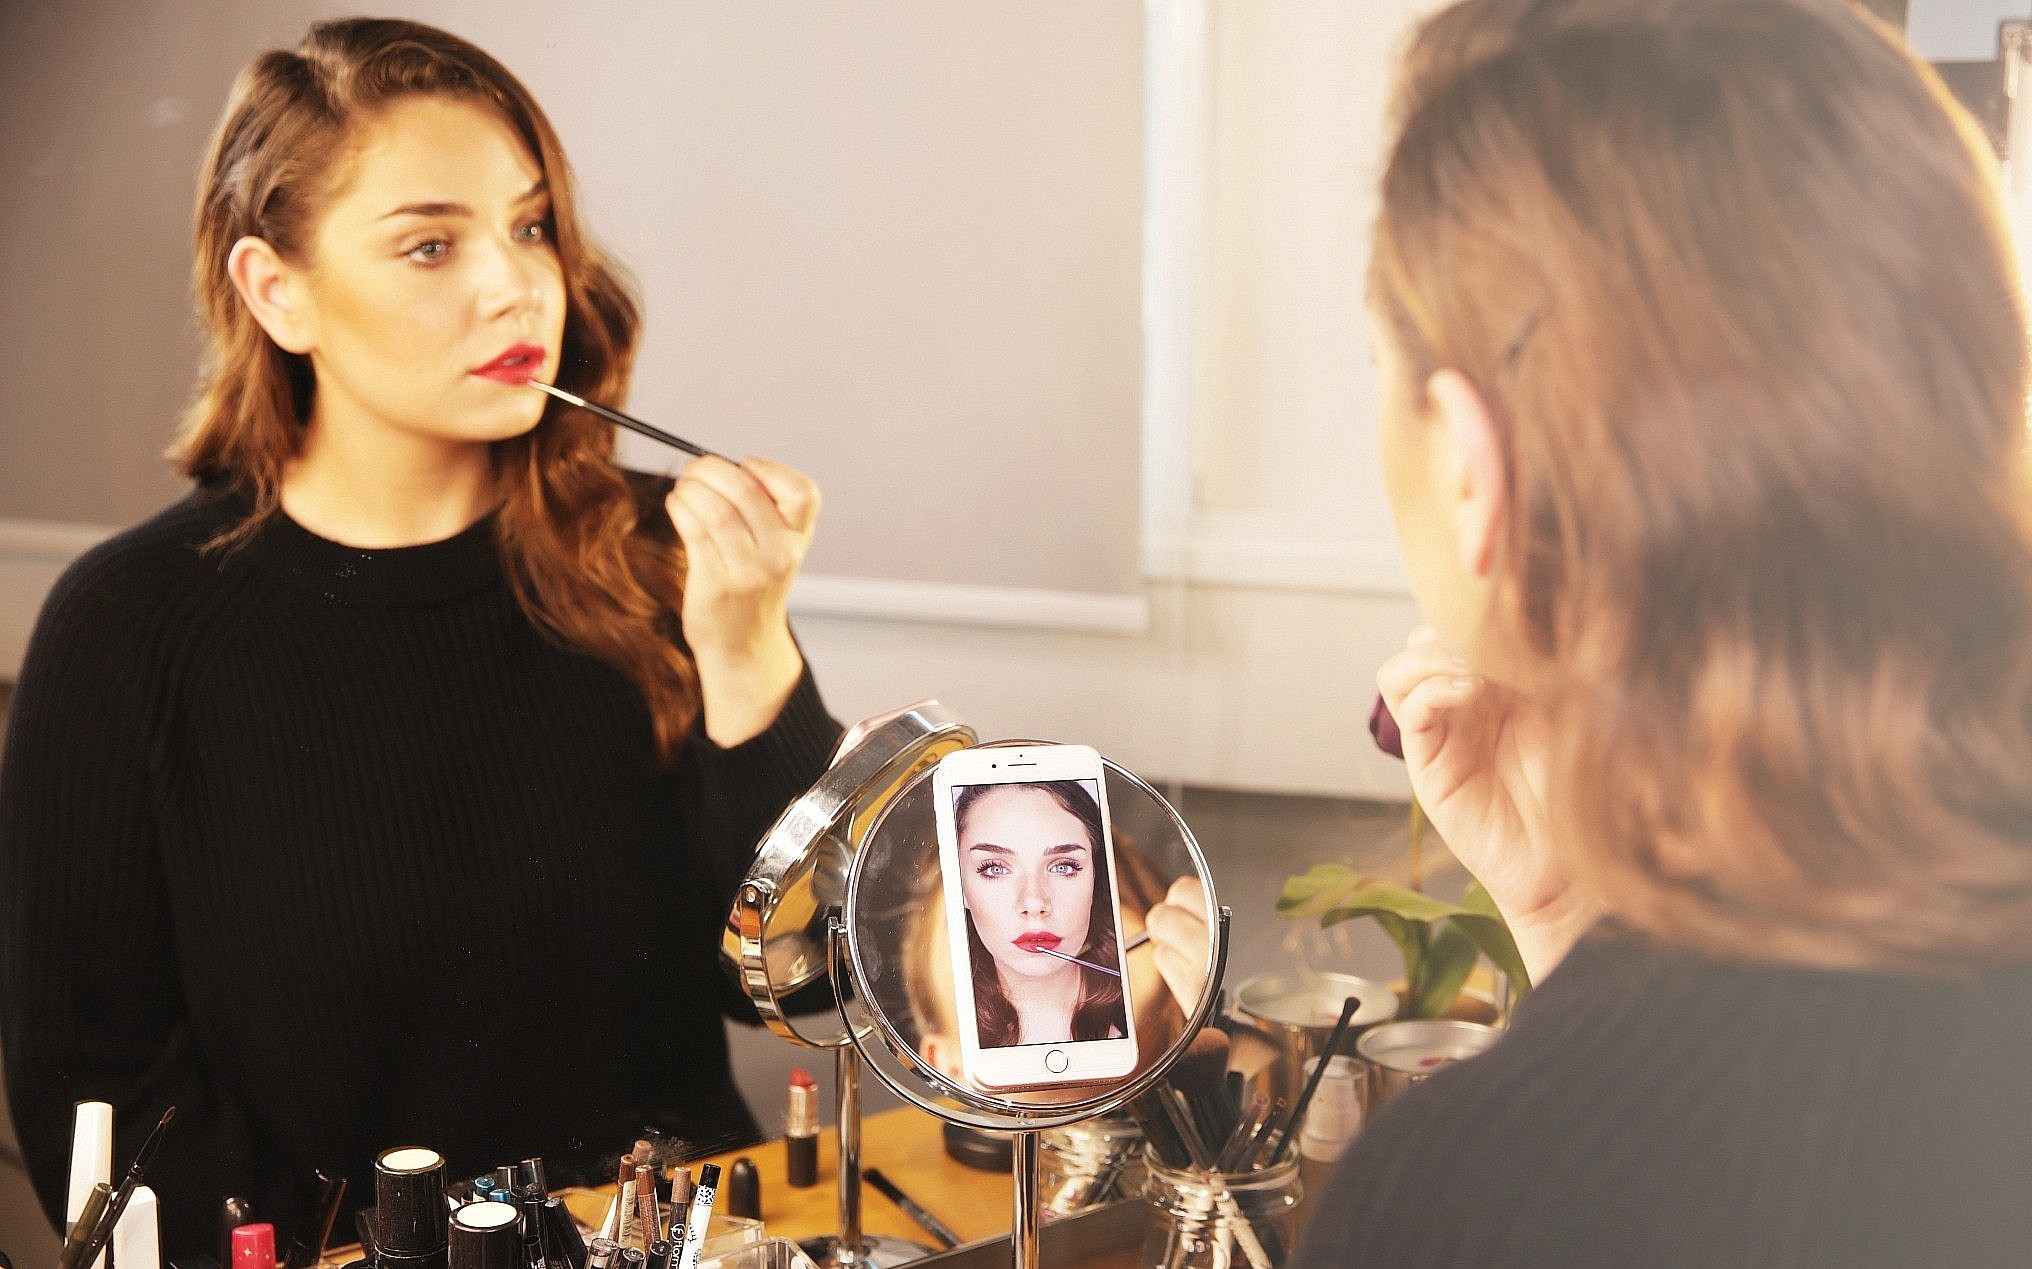 Beauty App Checks Your Face And Makeup